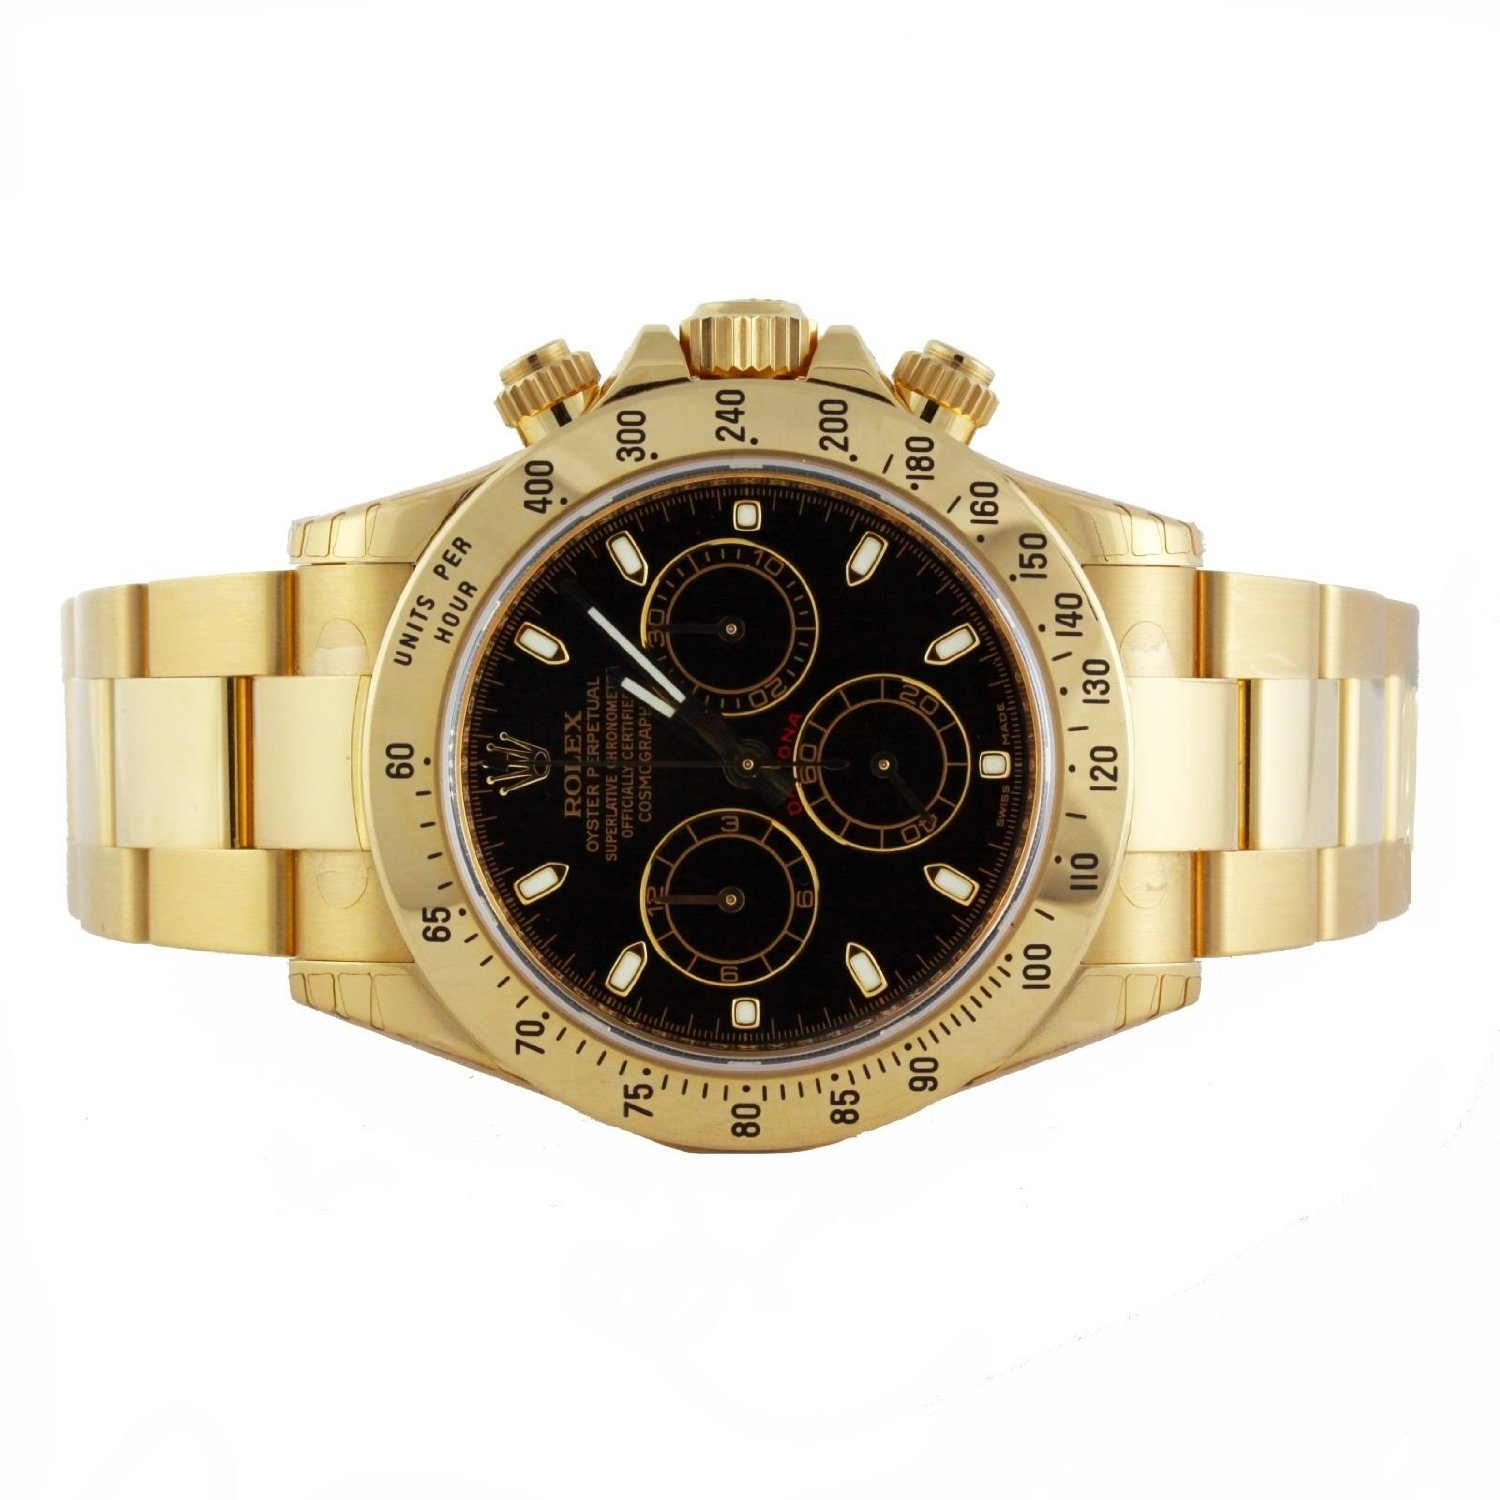 Rolex Daytona 18K Yellow Gold Black Dial Watch